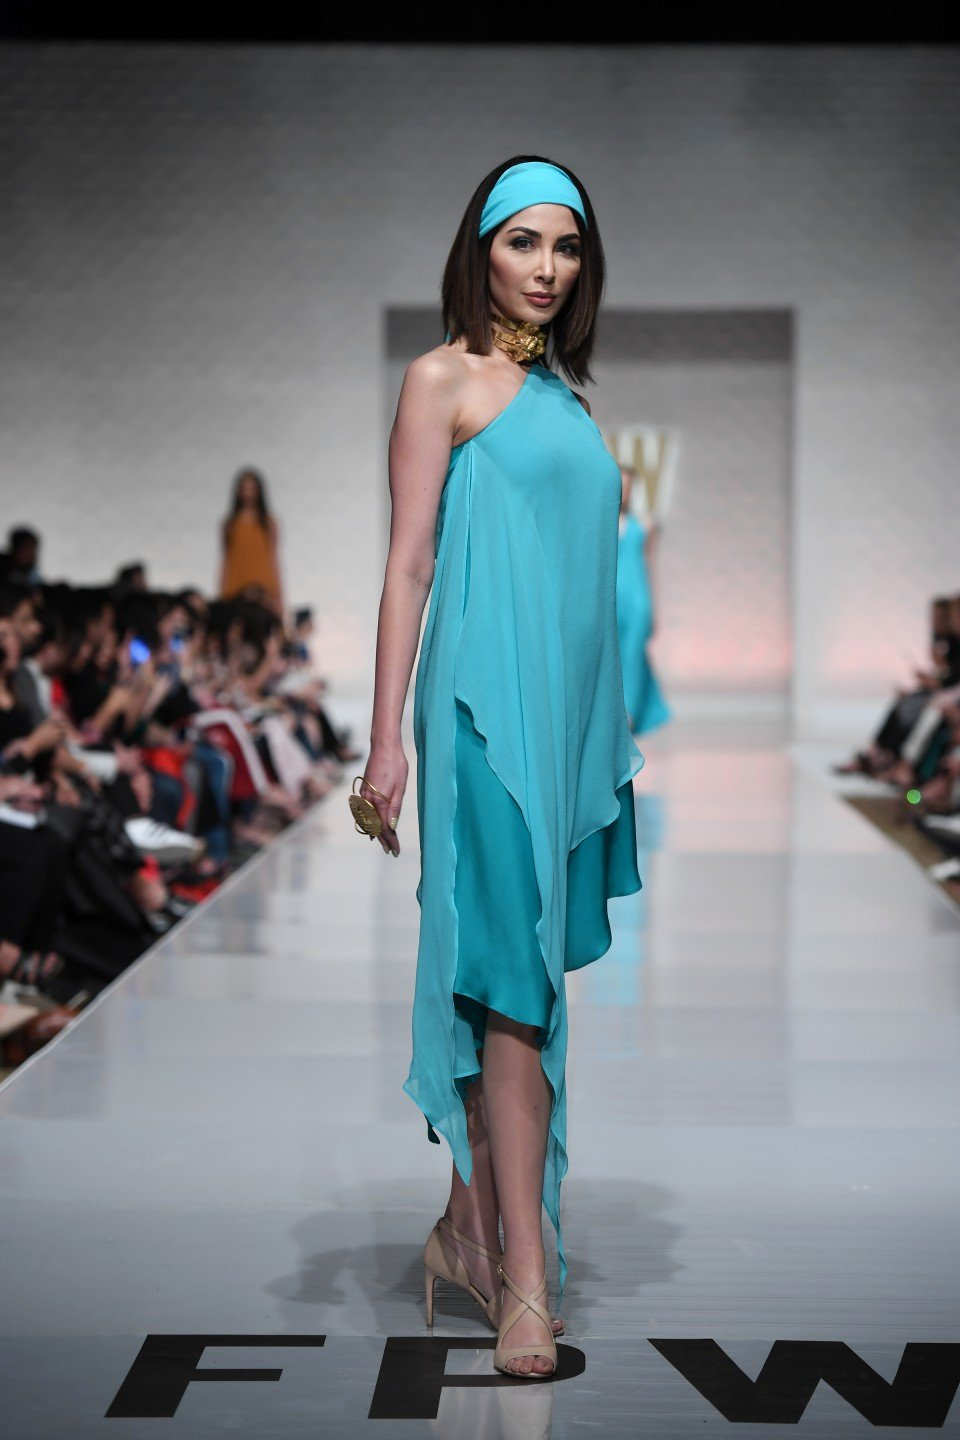 Yasmin Zaman - Aqua Blue Off Shoulder Dress